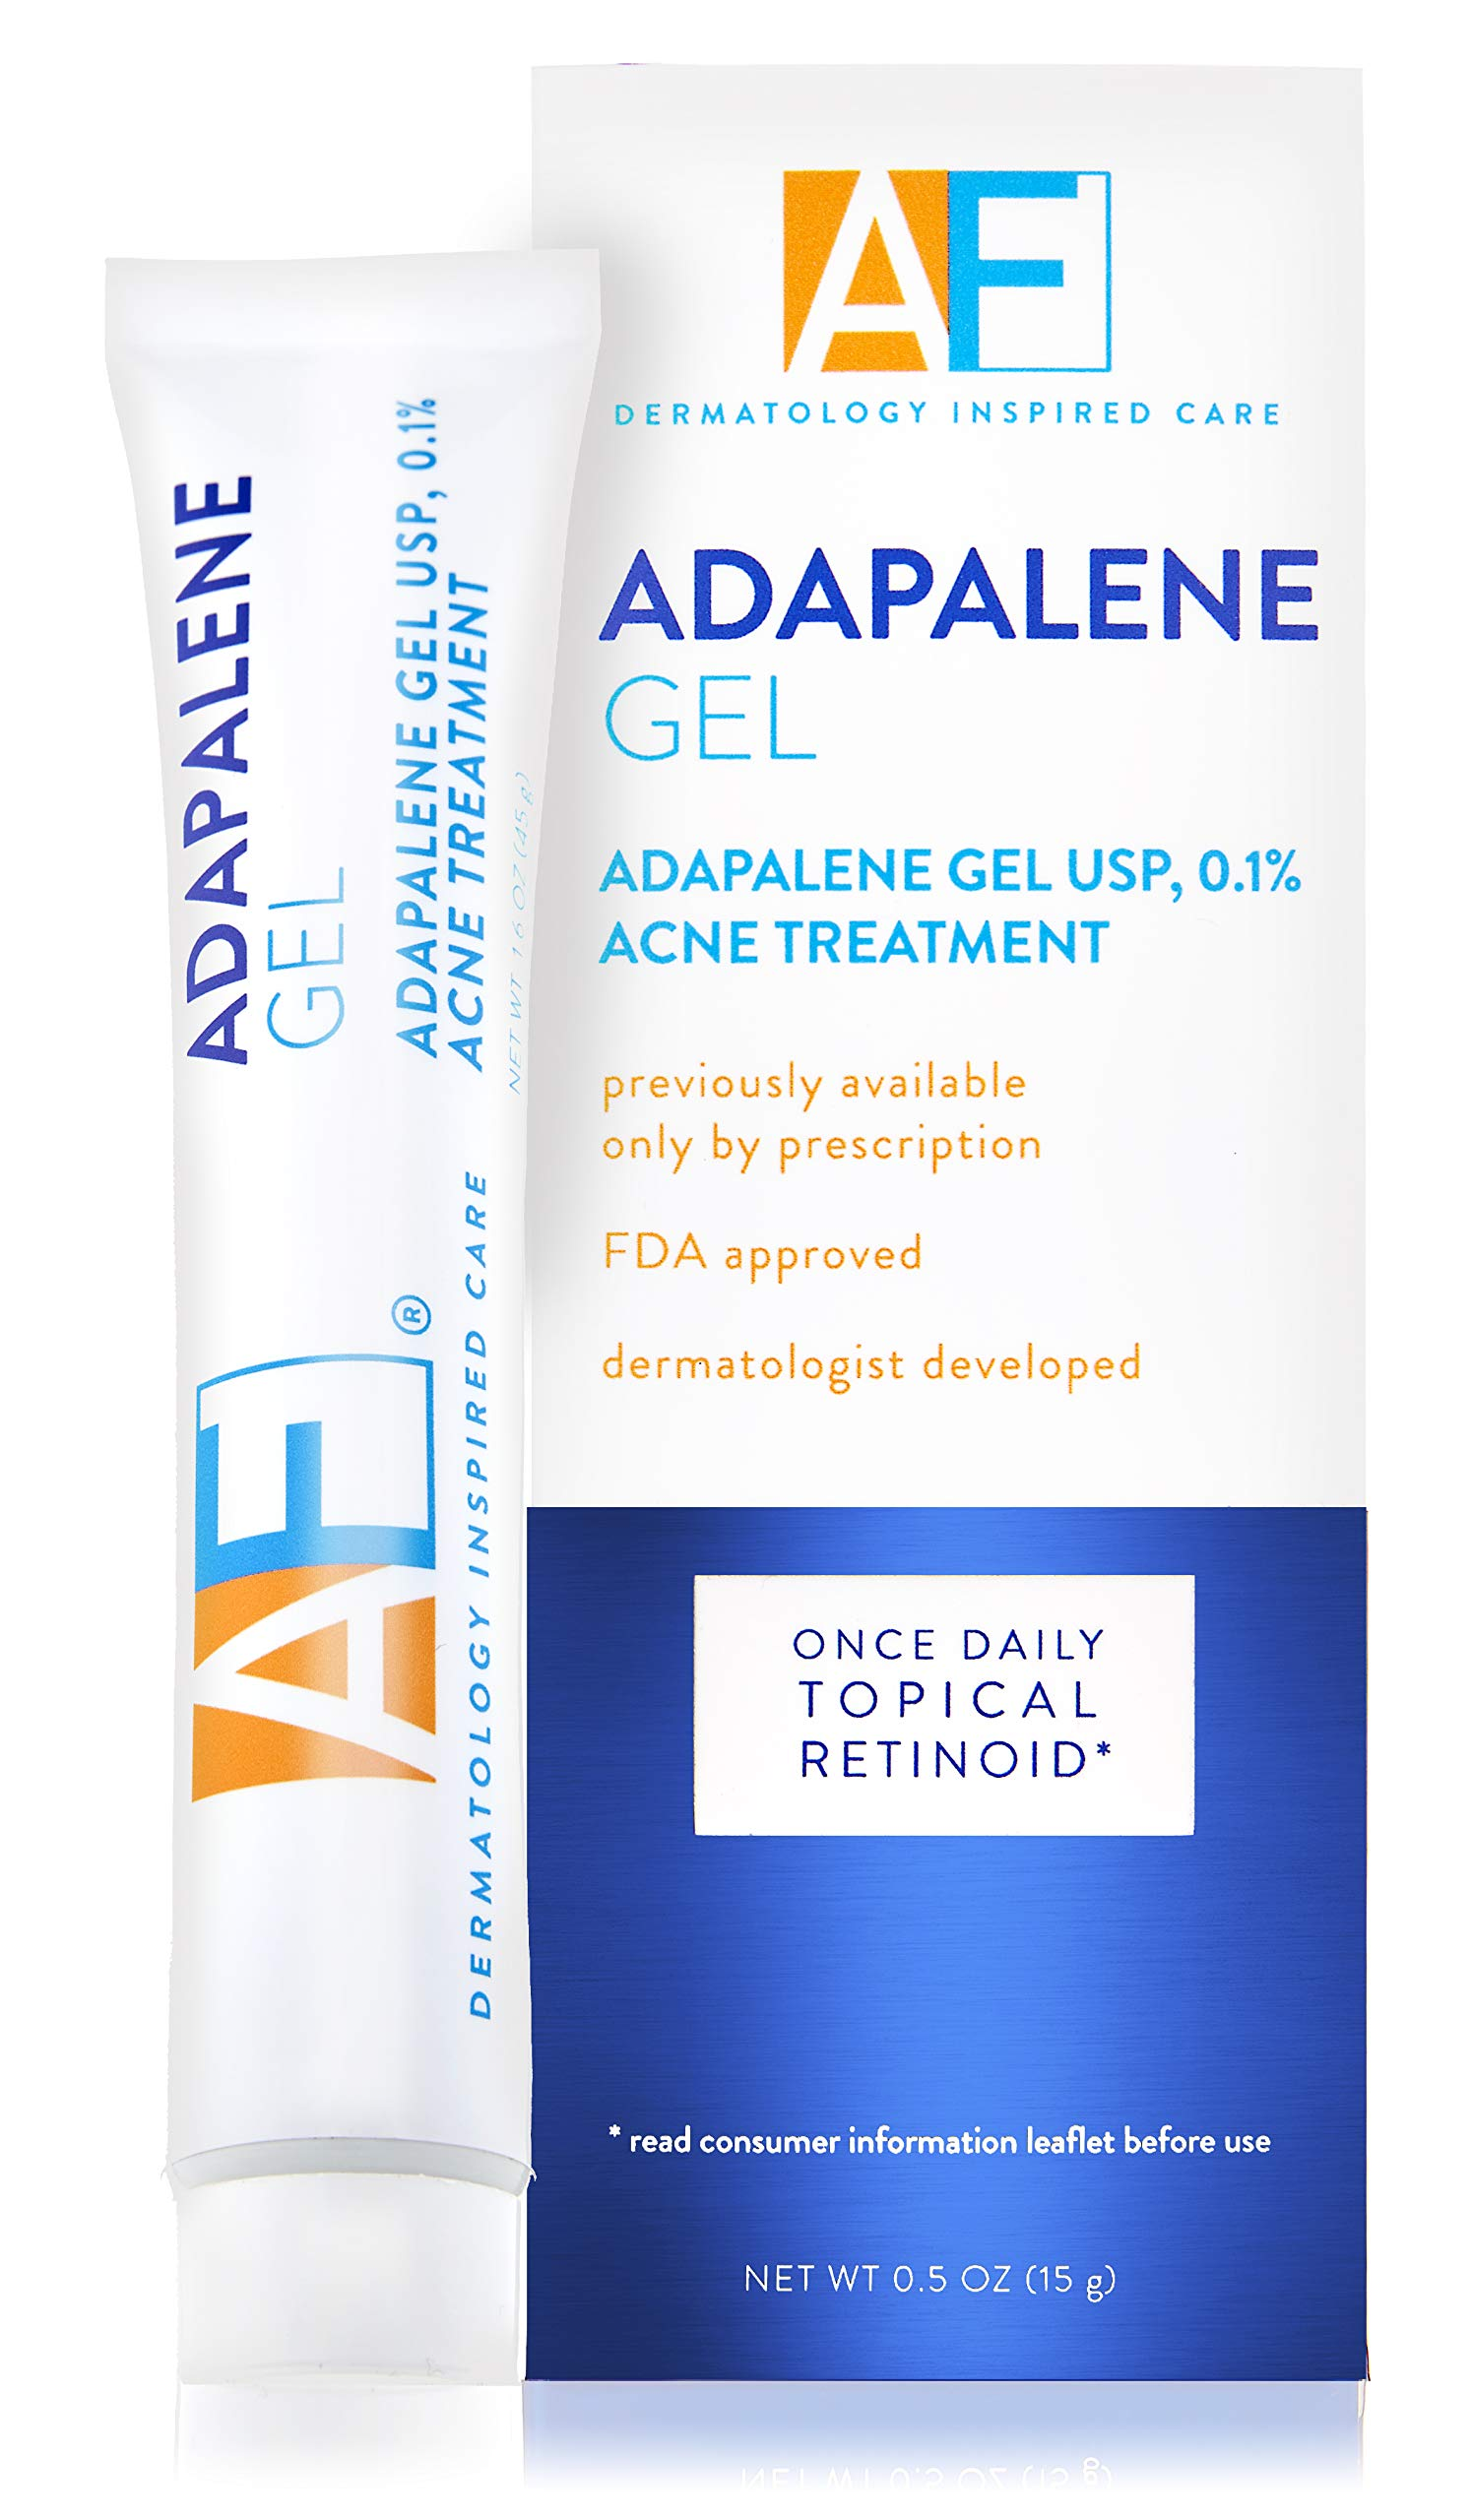 Acne Free - Acne Free Adapalene Gel 0.1%, Once-Daily Topical Retinoid Acne Treatment, 30 Day Supply, 0.5 oz